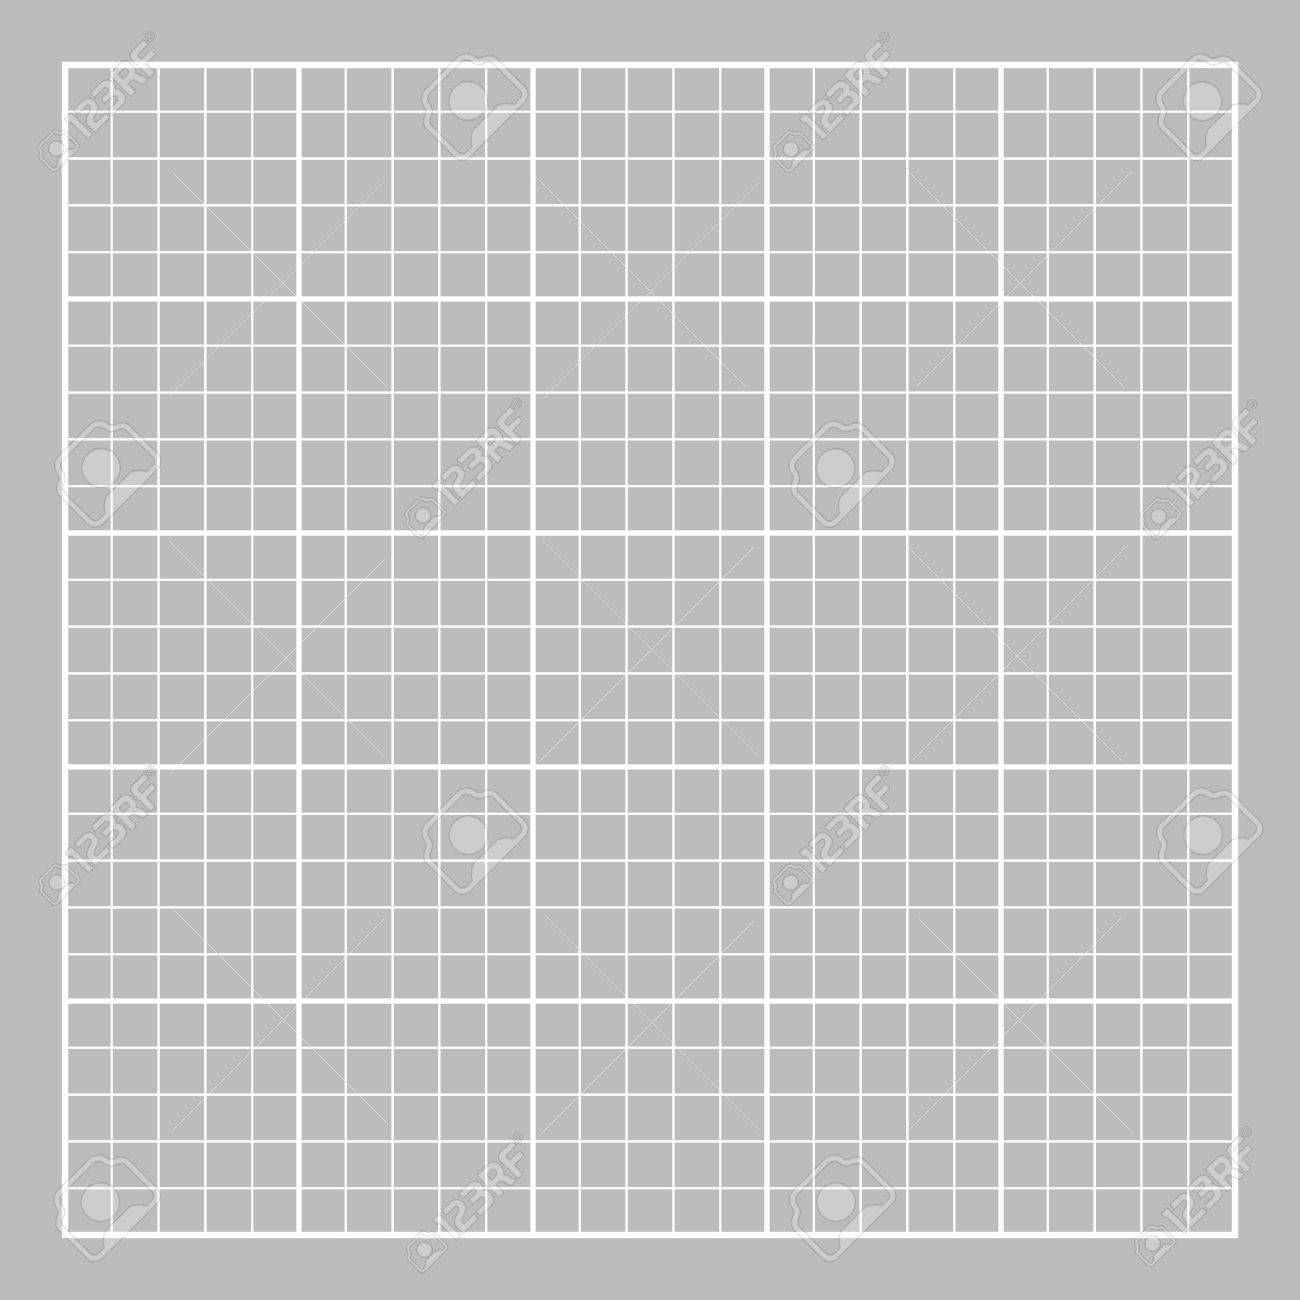 Graph Paper Illustrator Background Eps10 Royalty Free Cliparts ...